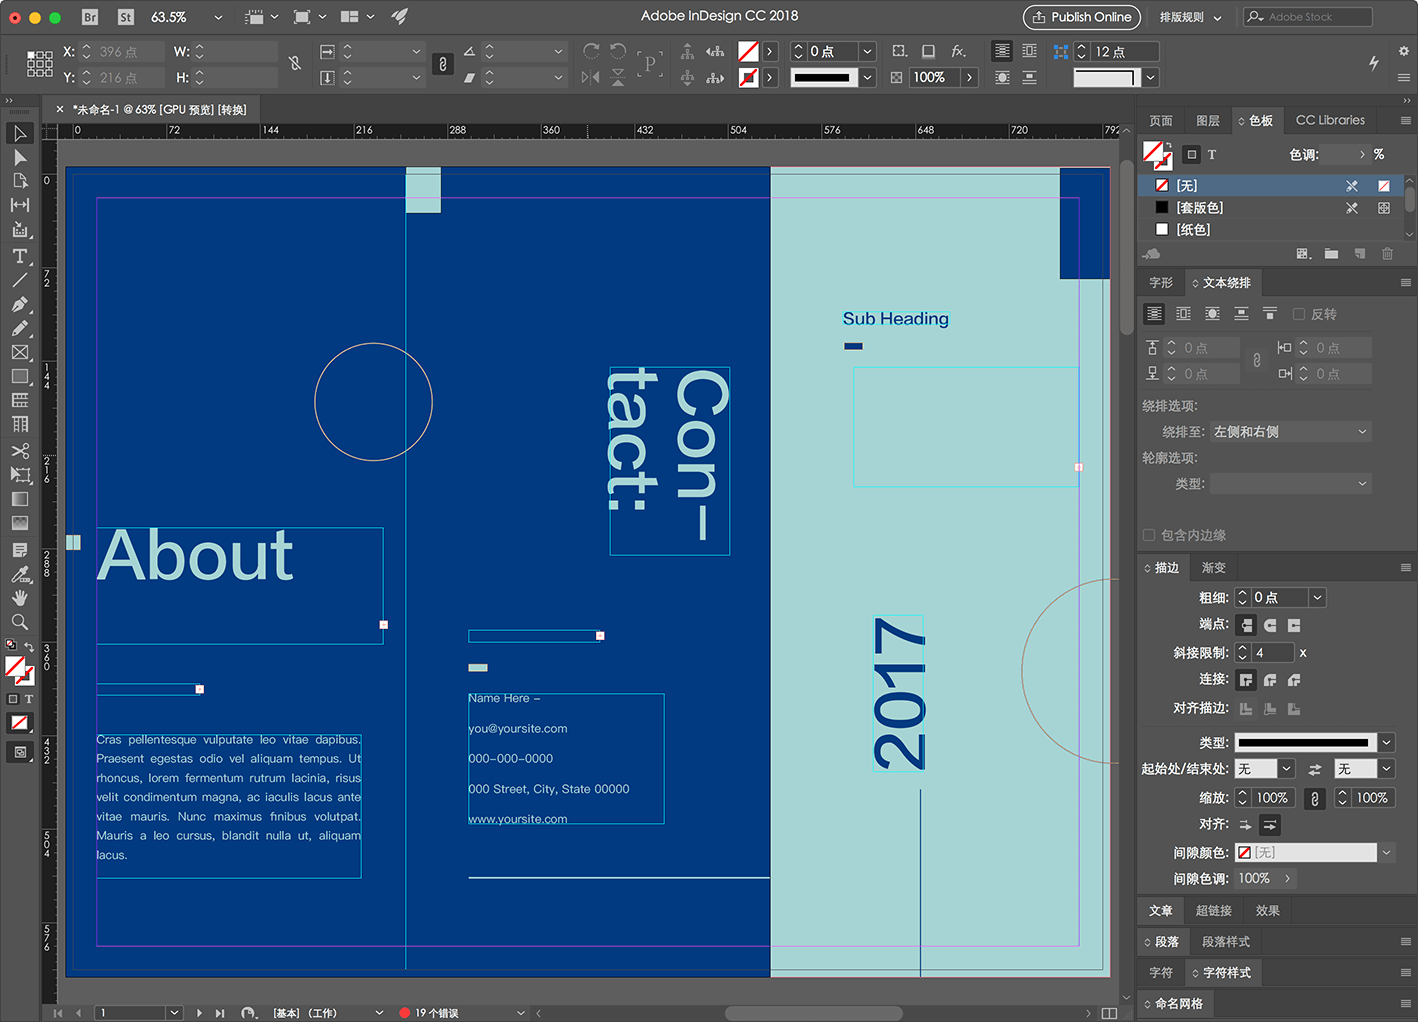 Adobe InDesign 2020 15.0.2 免激活 中文破解版 专业的印刷排版工具-马克喵